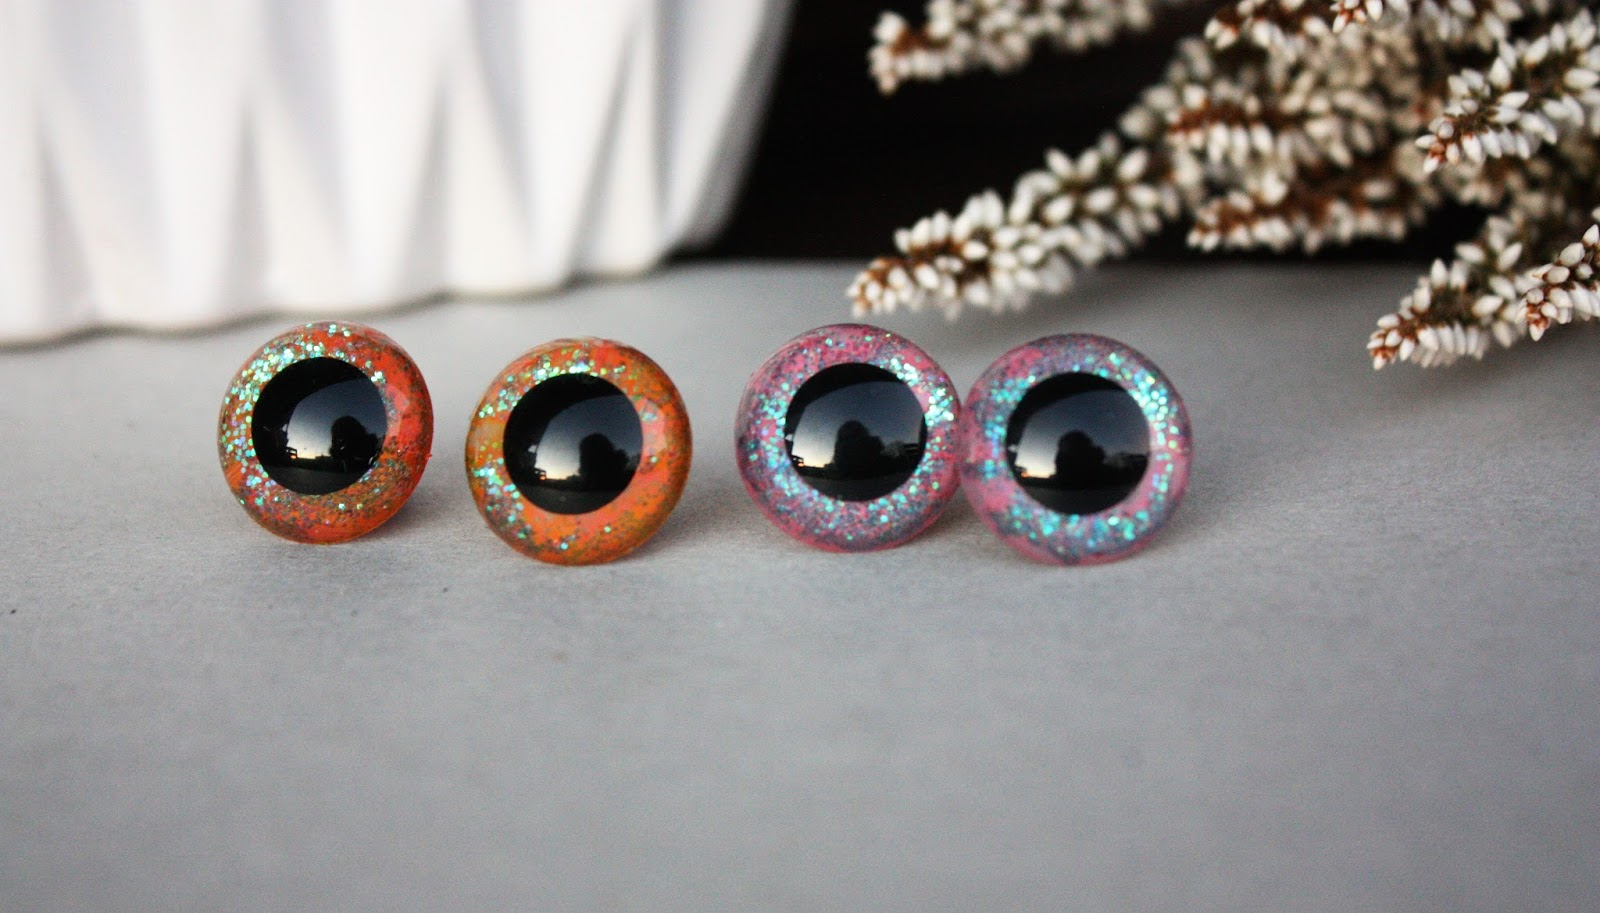 Eyes For Amigurumi : Happyamigurumi: hand painted safety eyes 12mm and 18mm eyes for